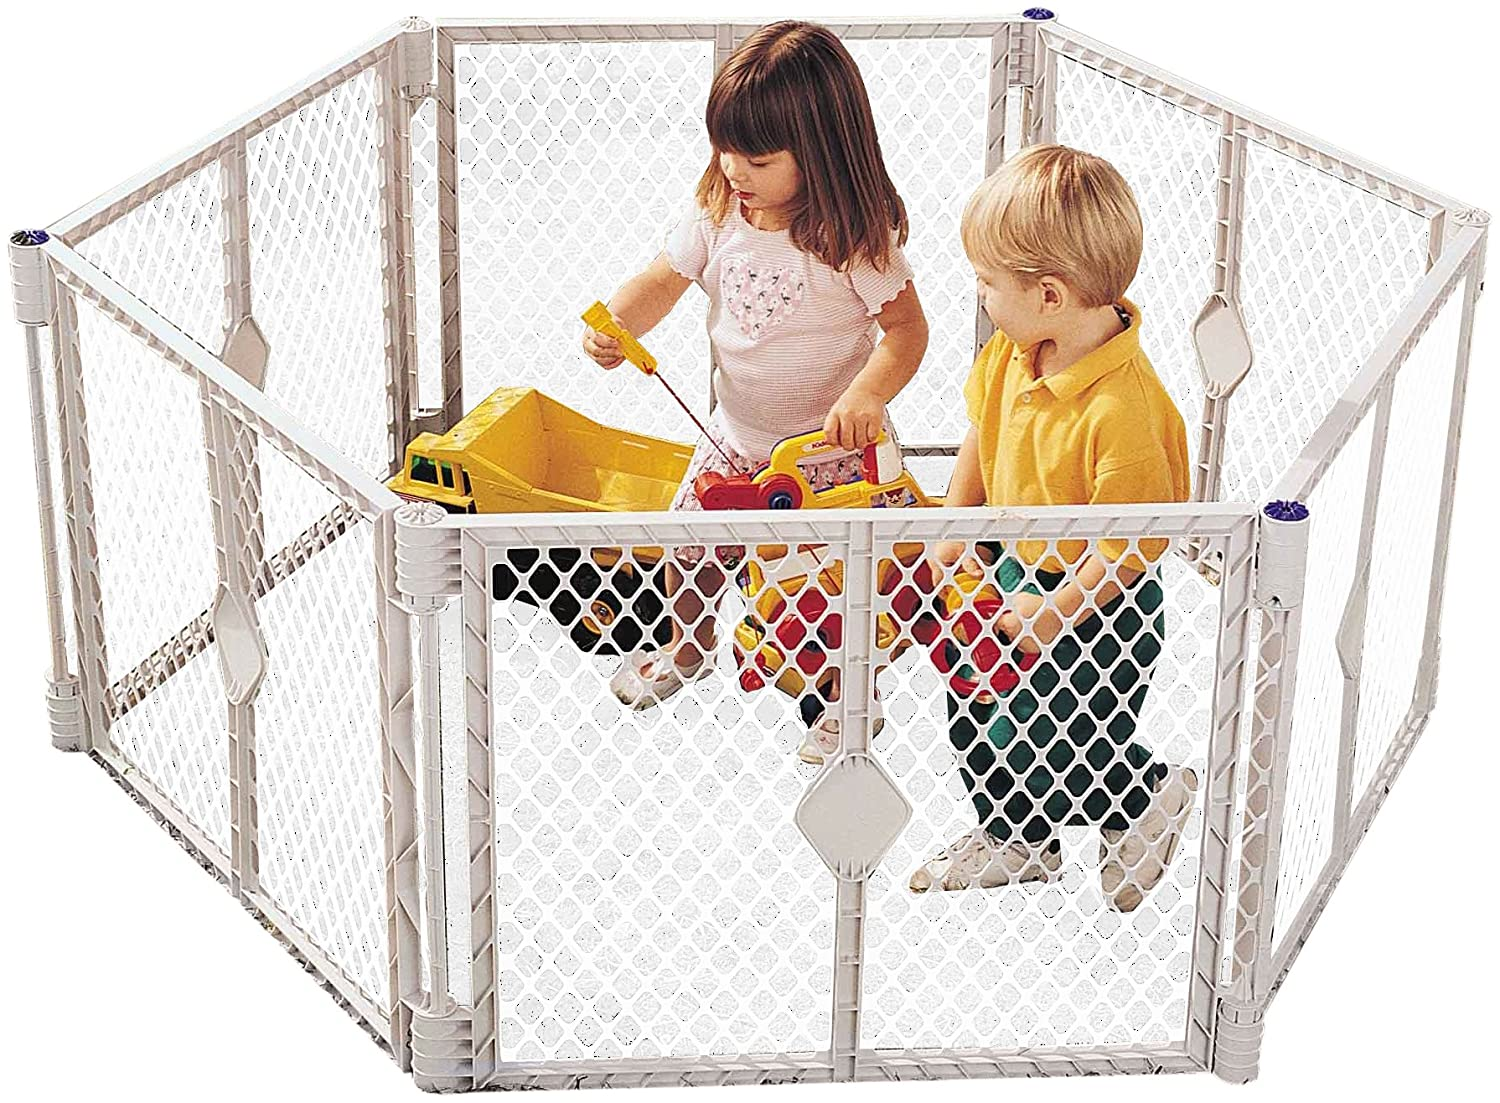 """Superyard Colorplay 8-Panel"" by North States: Freestanding, portable play yard to keep children safe indoors or outdoors. Freestanding. 256"" length, 34.4 sq. ft. enclosure (26"" tall, Multicolor) 8768"